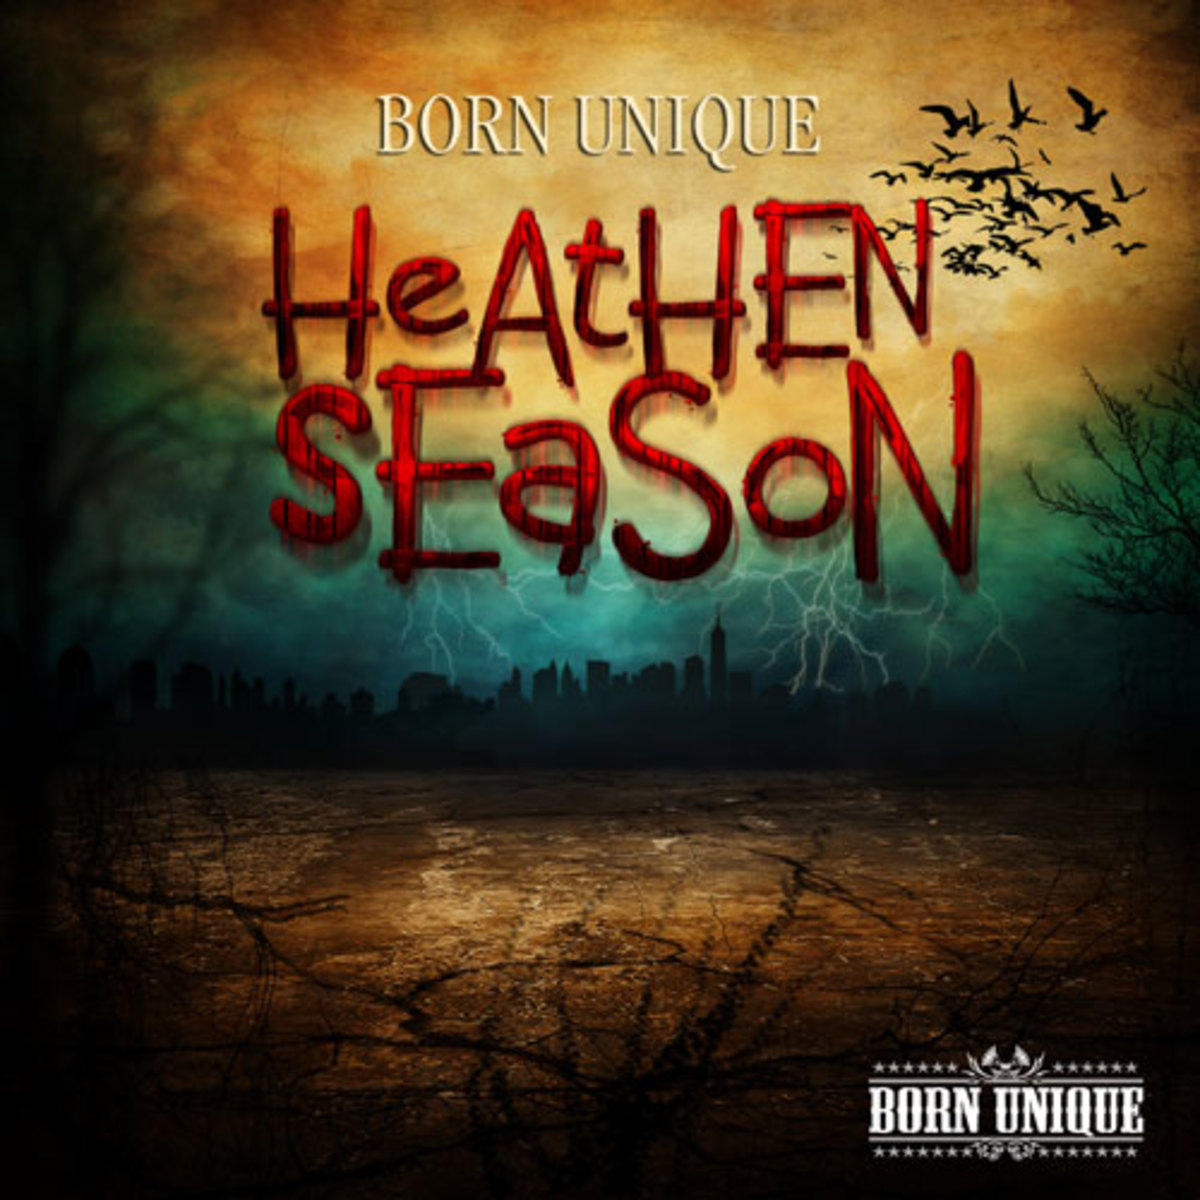 bornunique-heathenseason.jpg